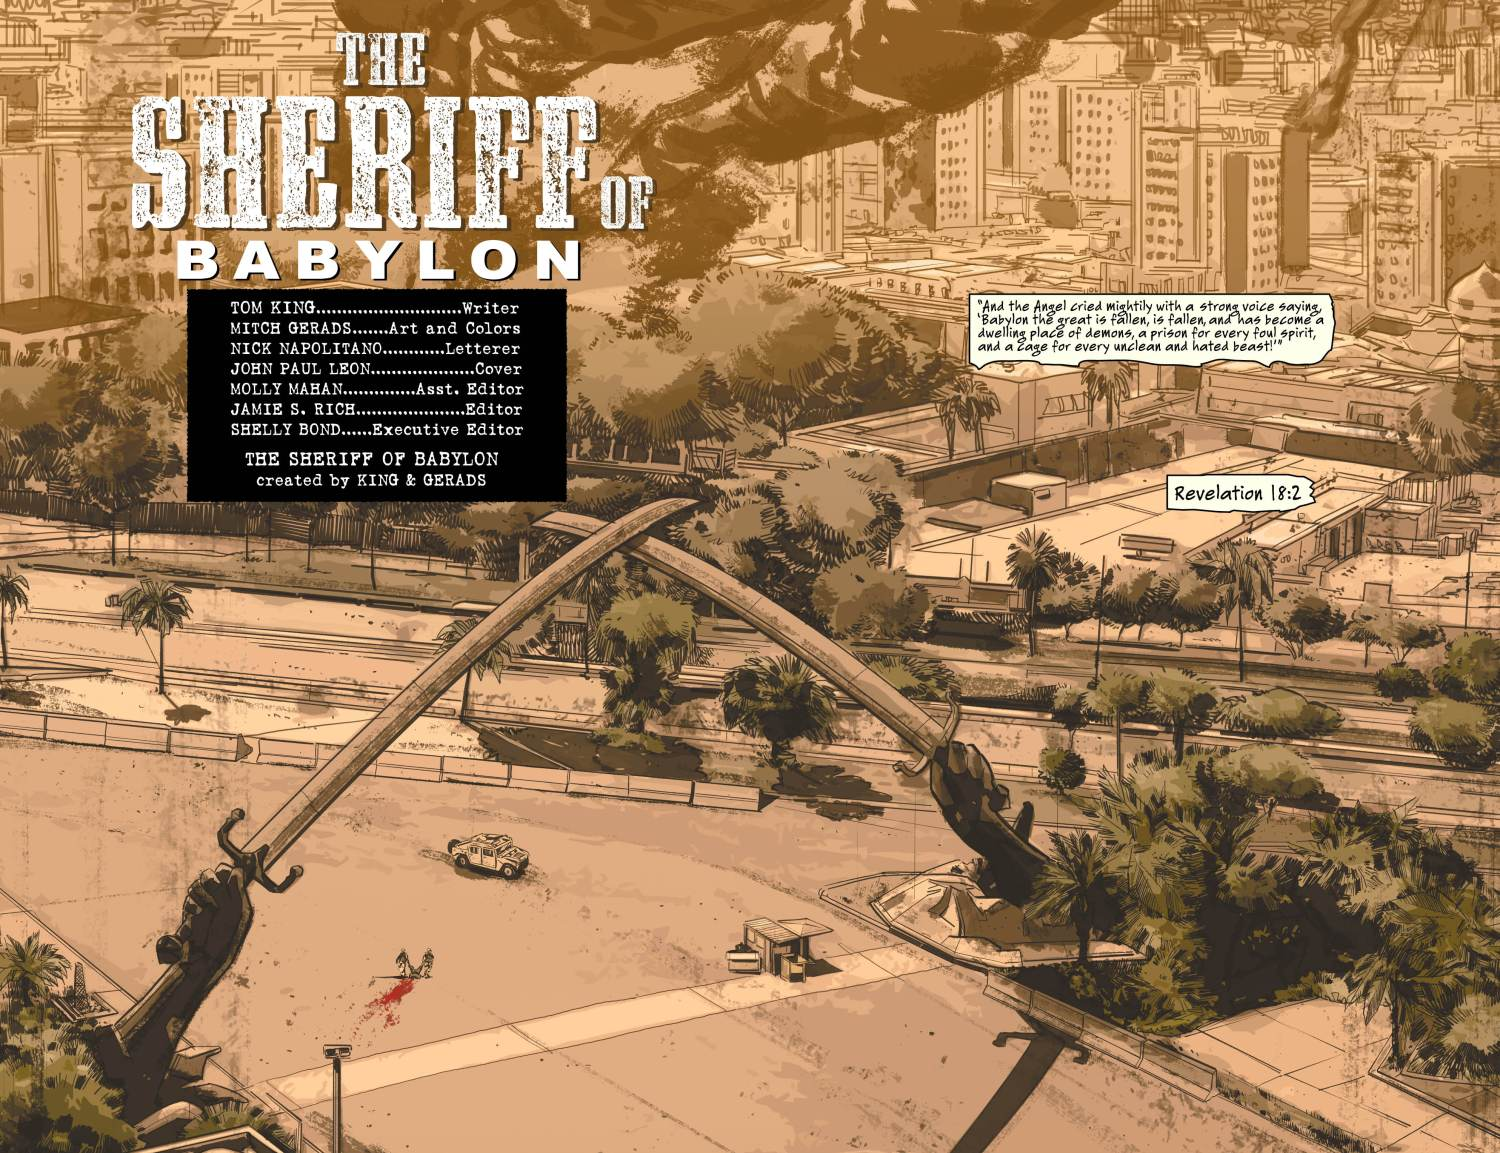 The splash page to the Sherrif of Babylon. Look carefully. image via Vertigo Comics